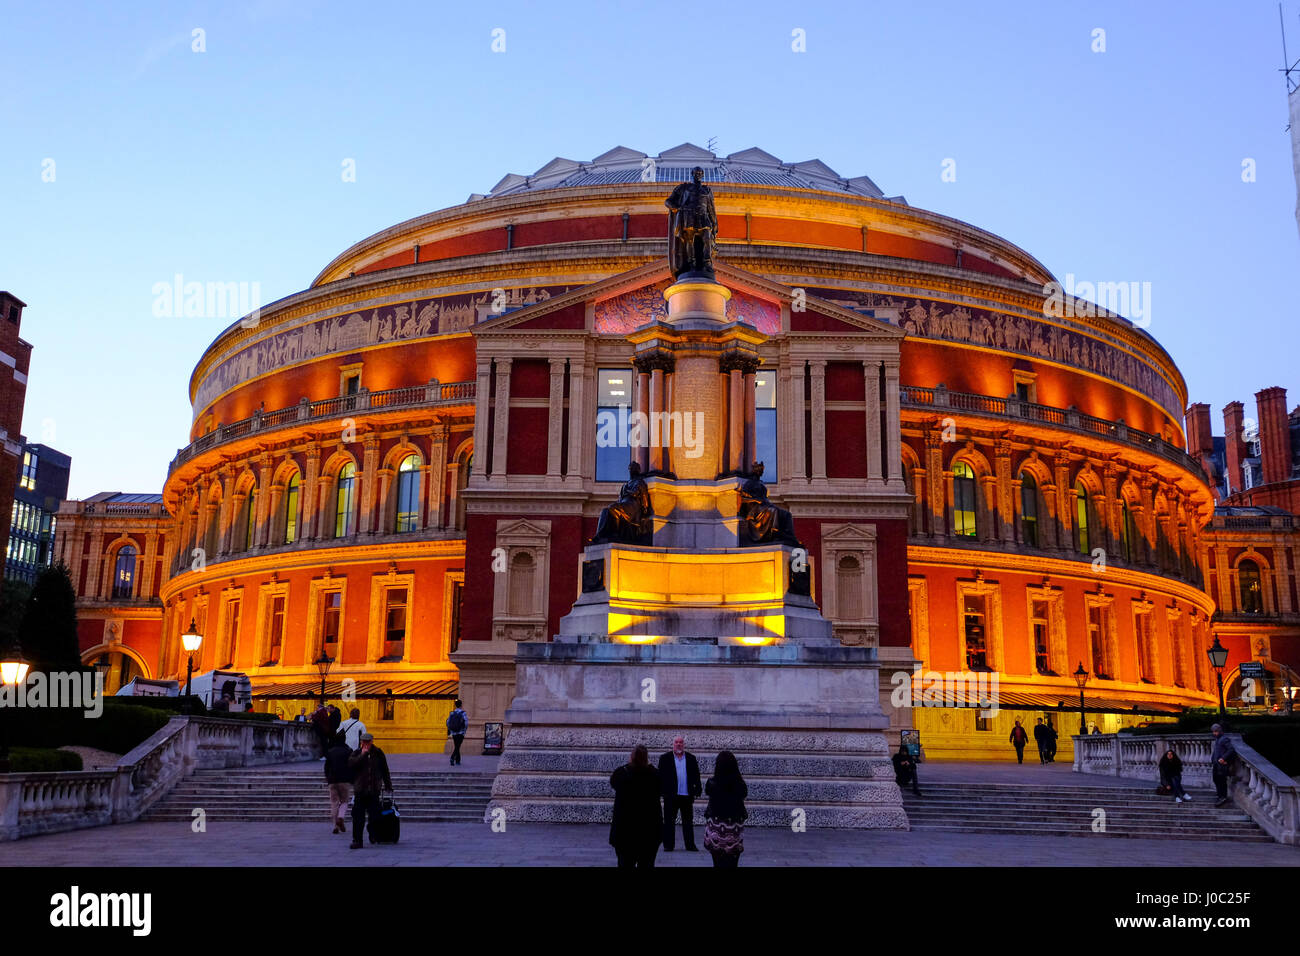 Royal Albert Hall, Kensington, London, England, Regno Unito Immagini Stock